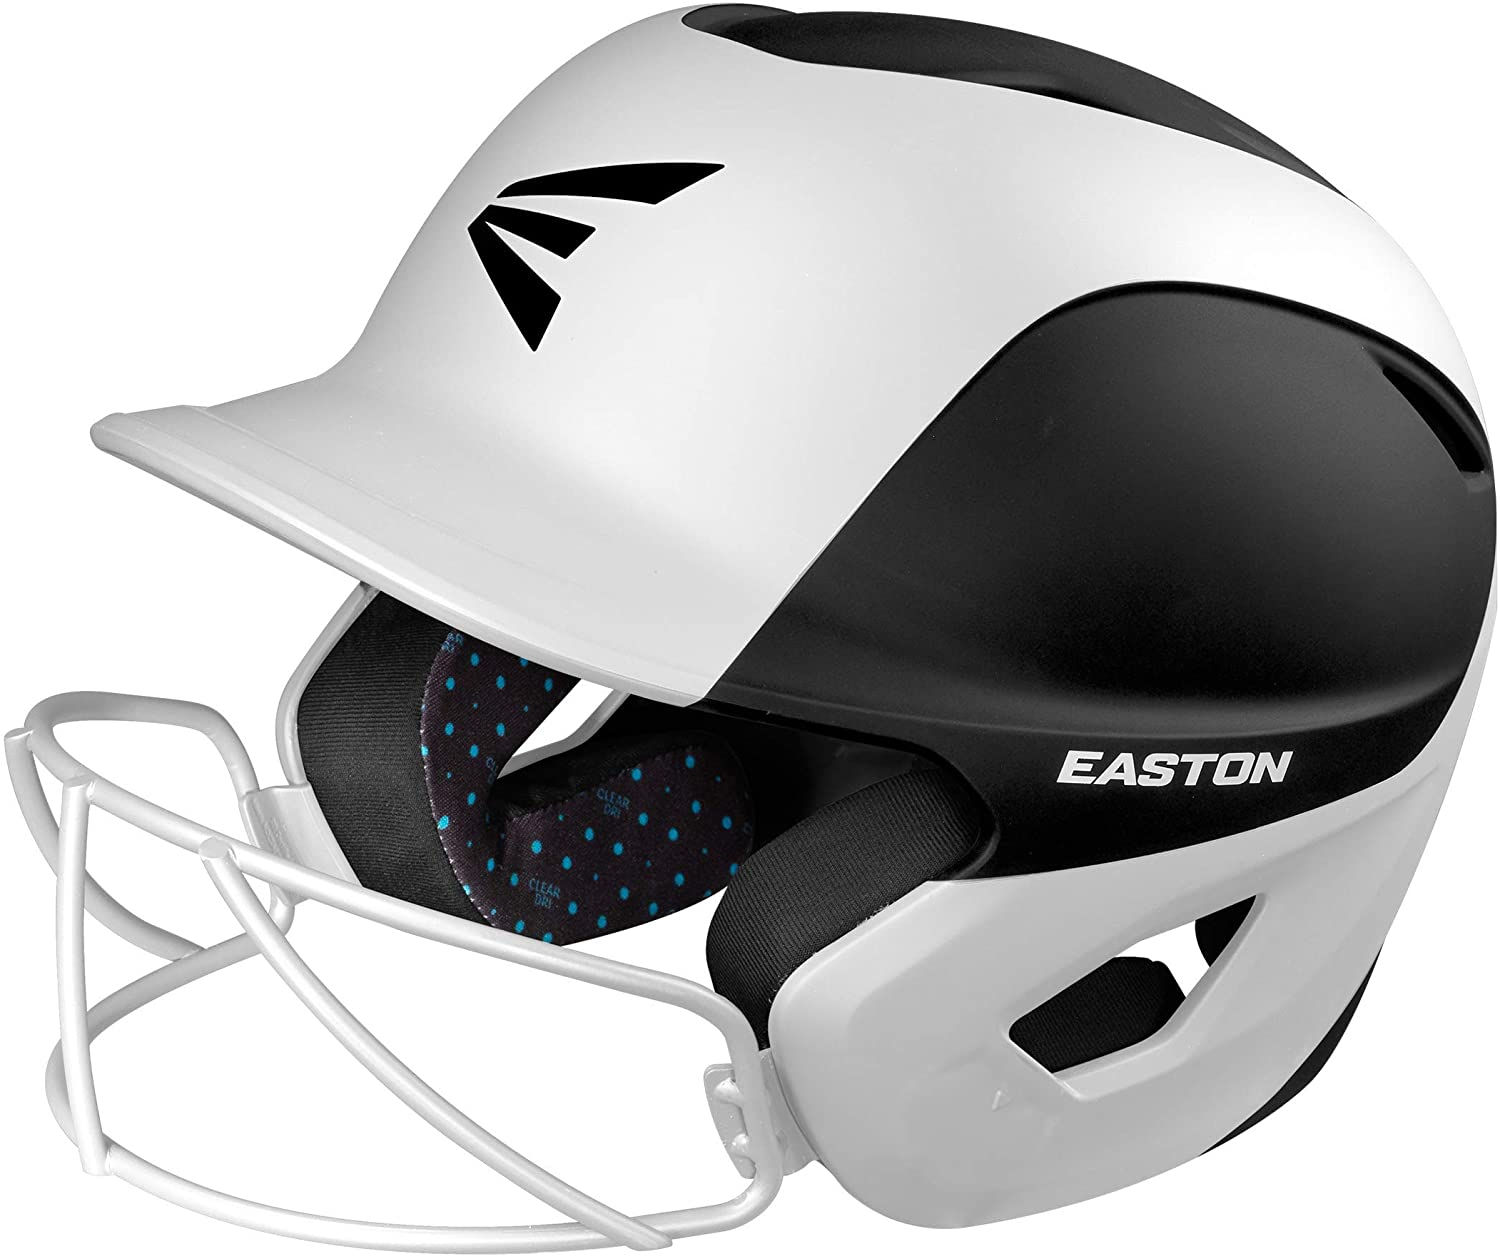 EASTON GHOST Special price for a limited time Max 50% OFF Softball Batting Helmet Matt Two-Tone Black White